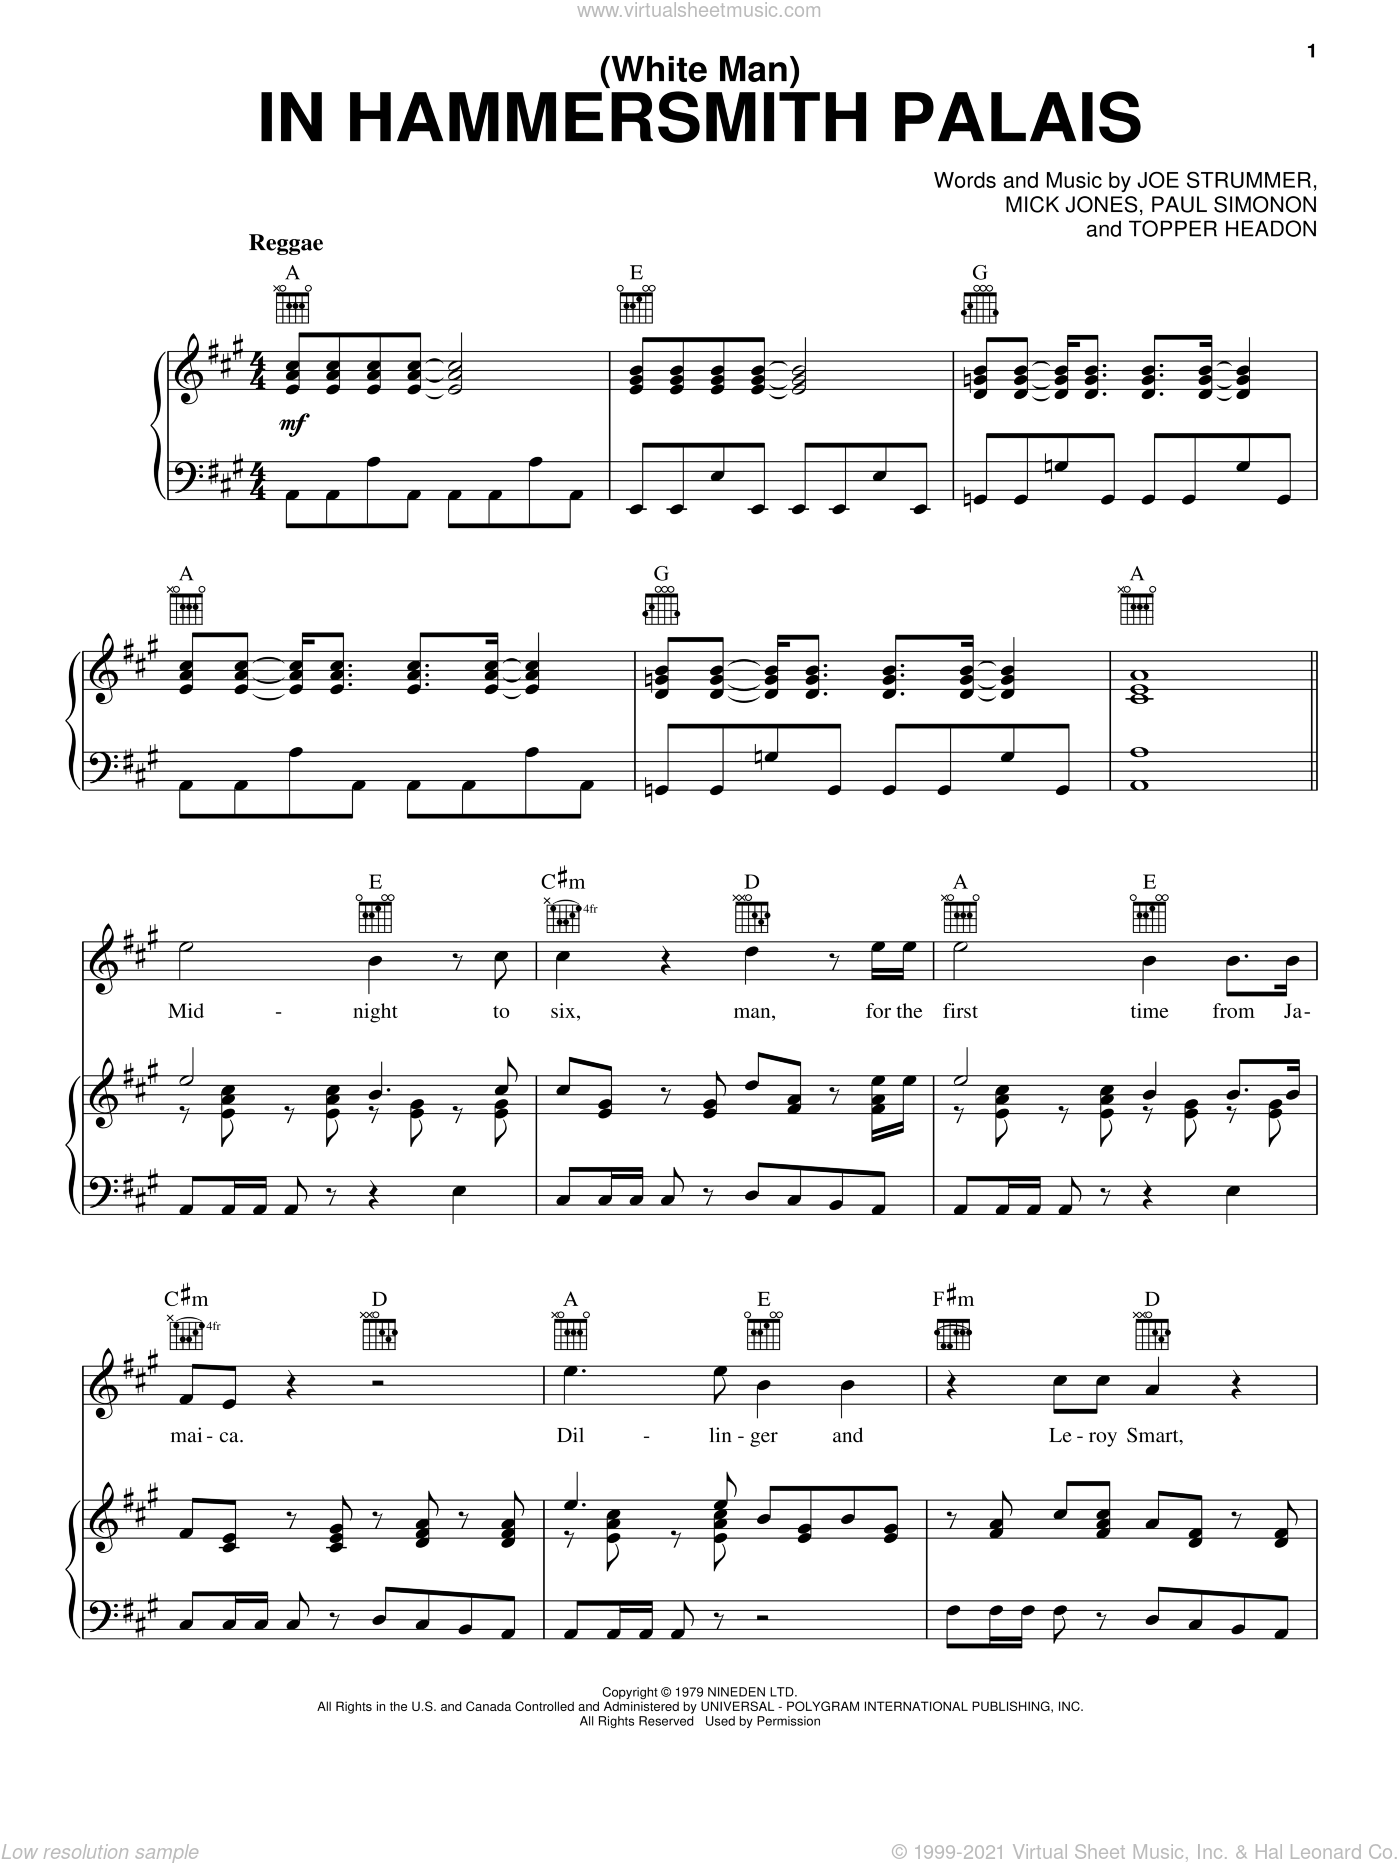 (White Man) In Hammersmith Palais sheet music for voice, piano or guitar by The Clash, Joe Strummer, Mick Jones, Paul Simonon and Topper Headon, intermediate skill level